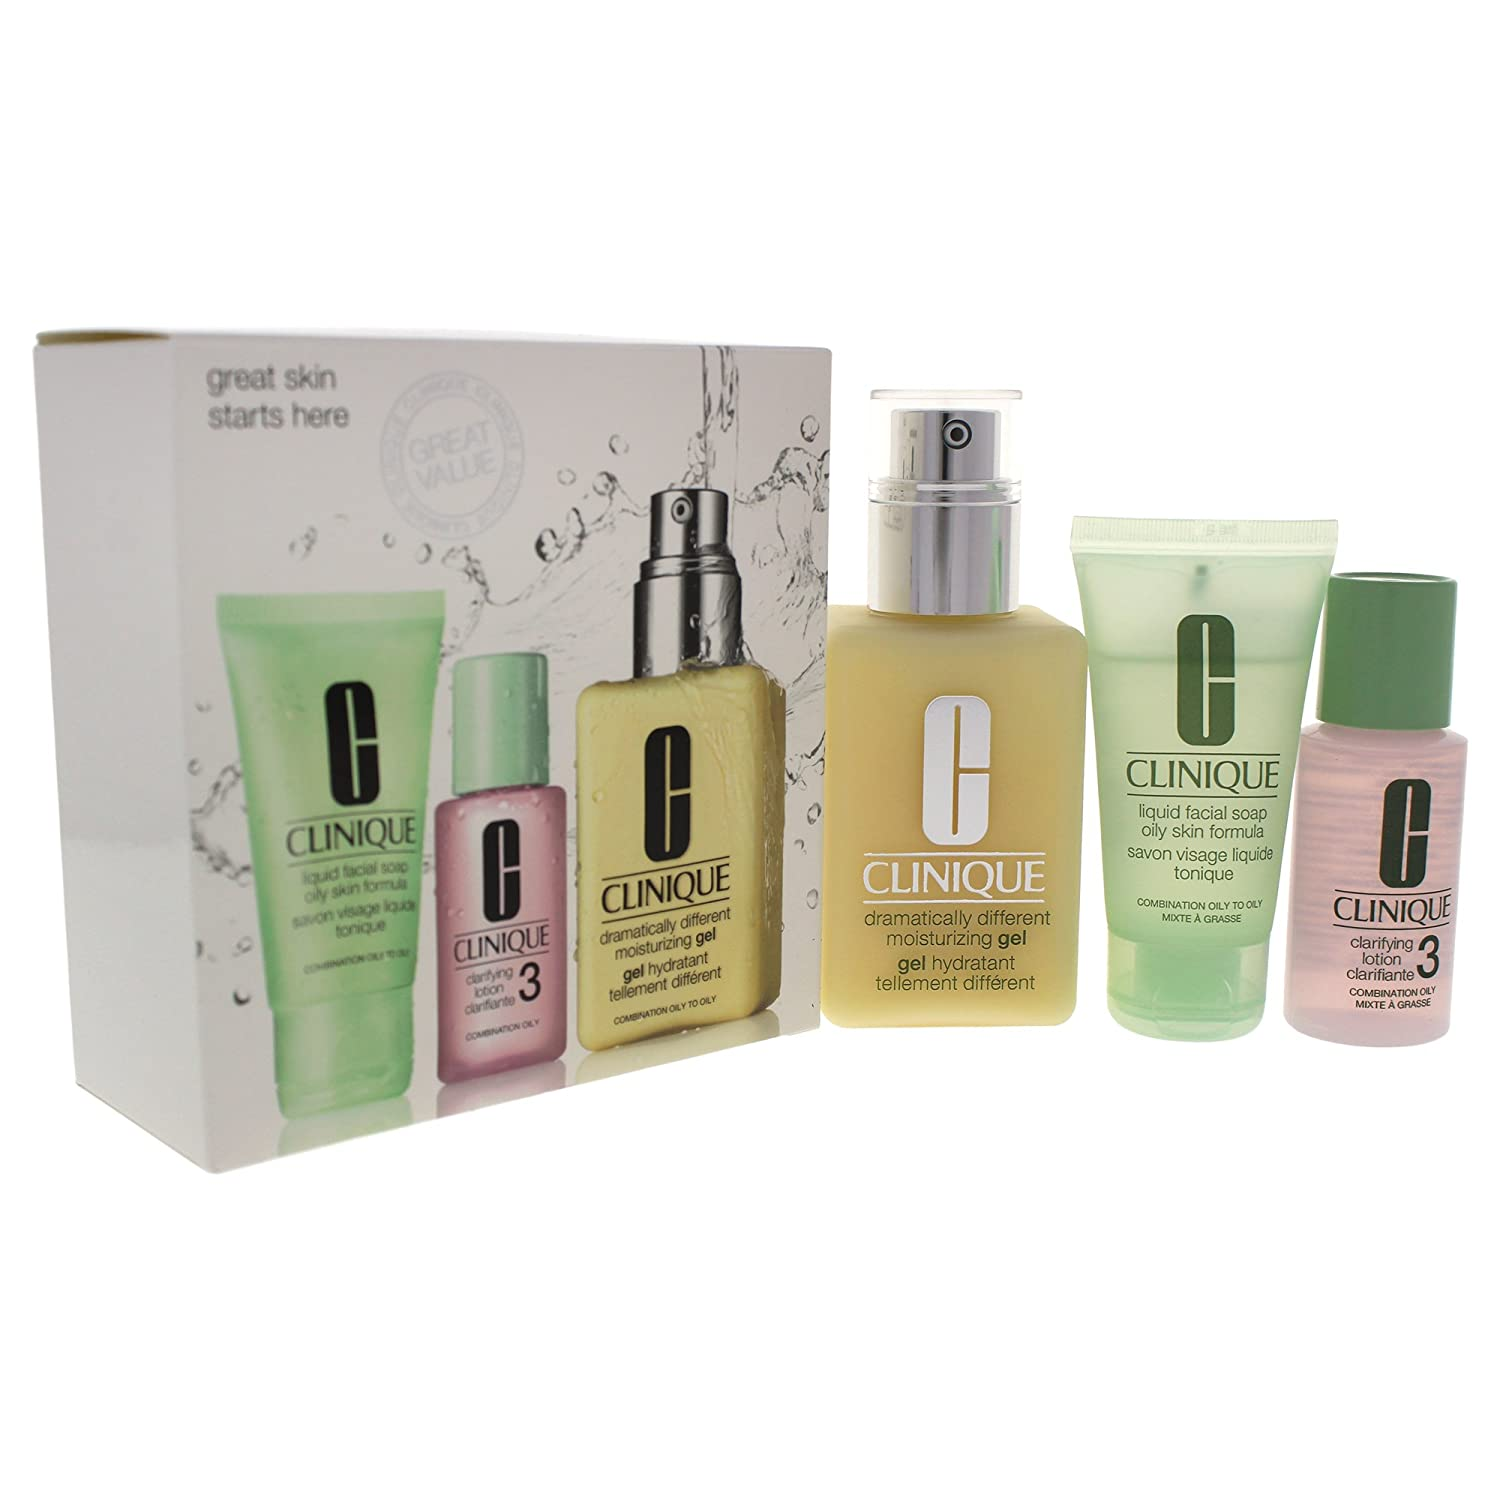 Clinique 3 Piece 3 Step Skin Care Introduction Kit for Unisex, Combination Oily Skin Type